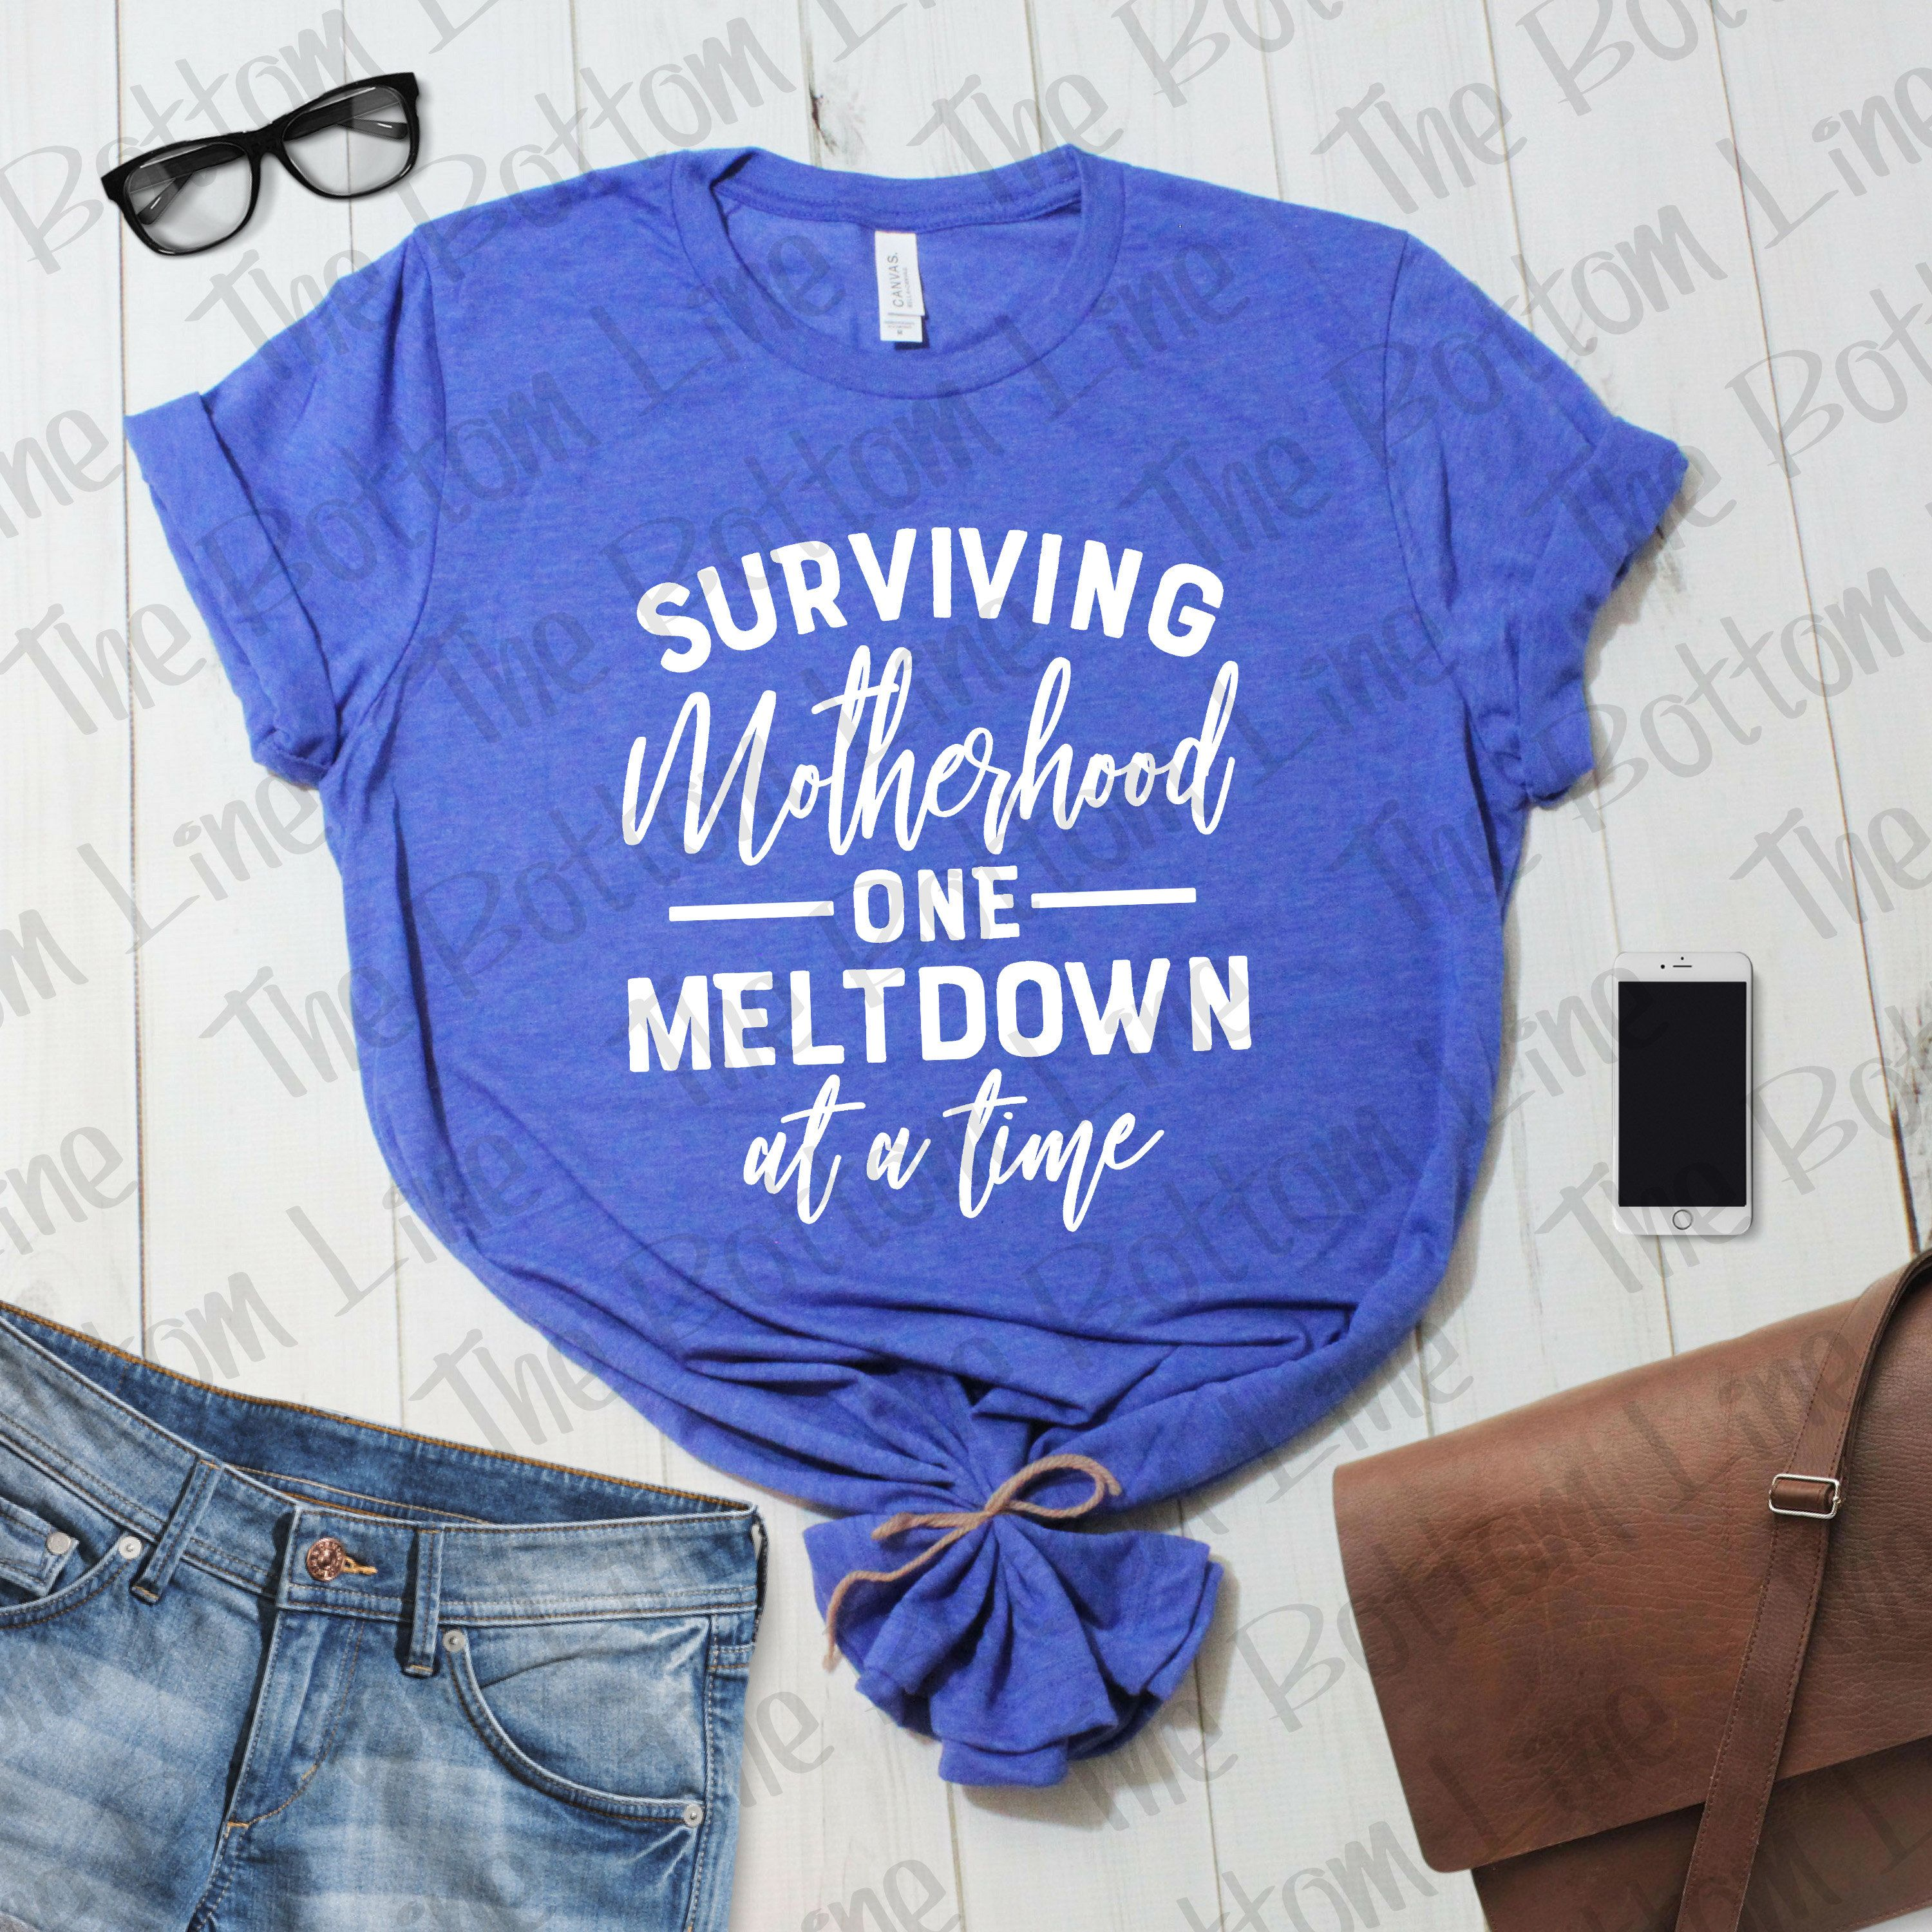 5af10d325c Surviving Motherhood One Meltdown at a Time, Mother's Day Tee, Shirt for  Mom,